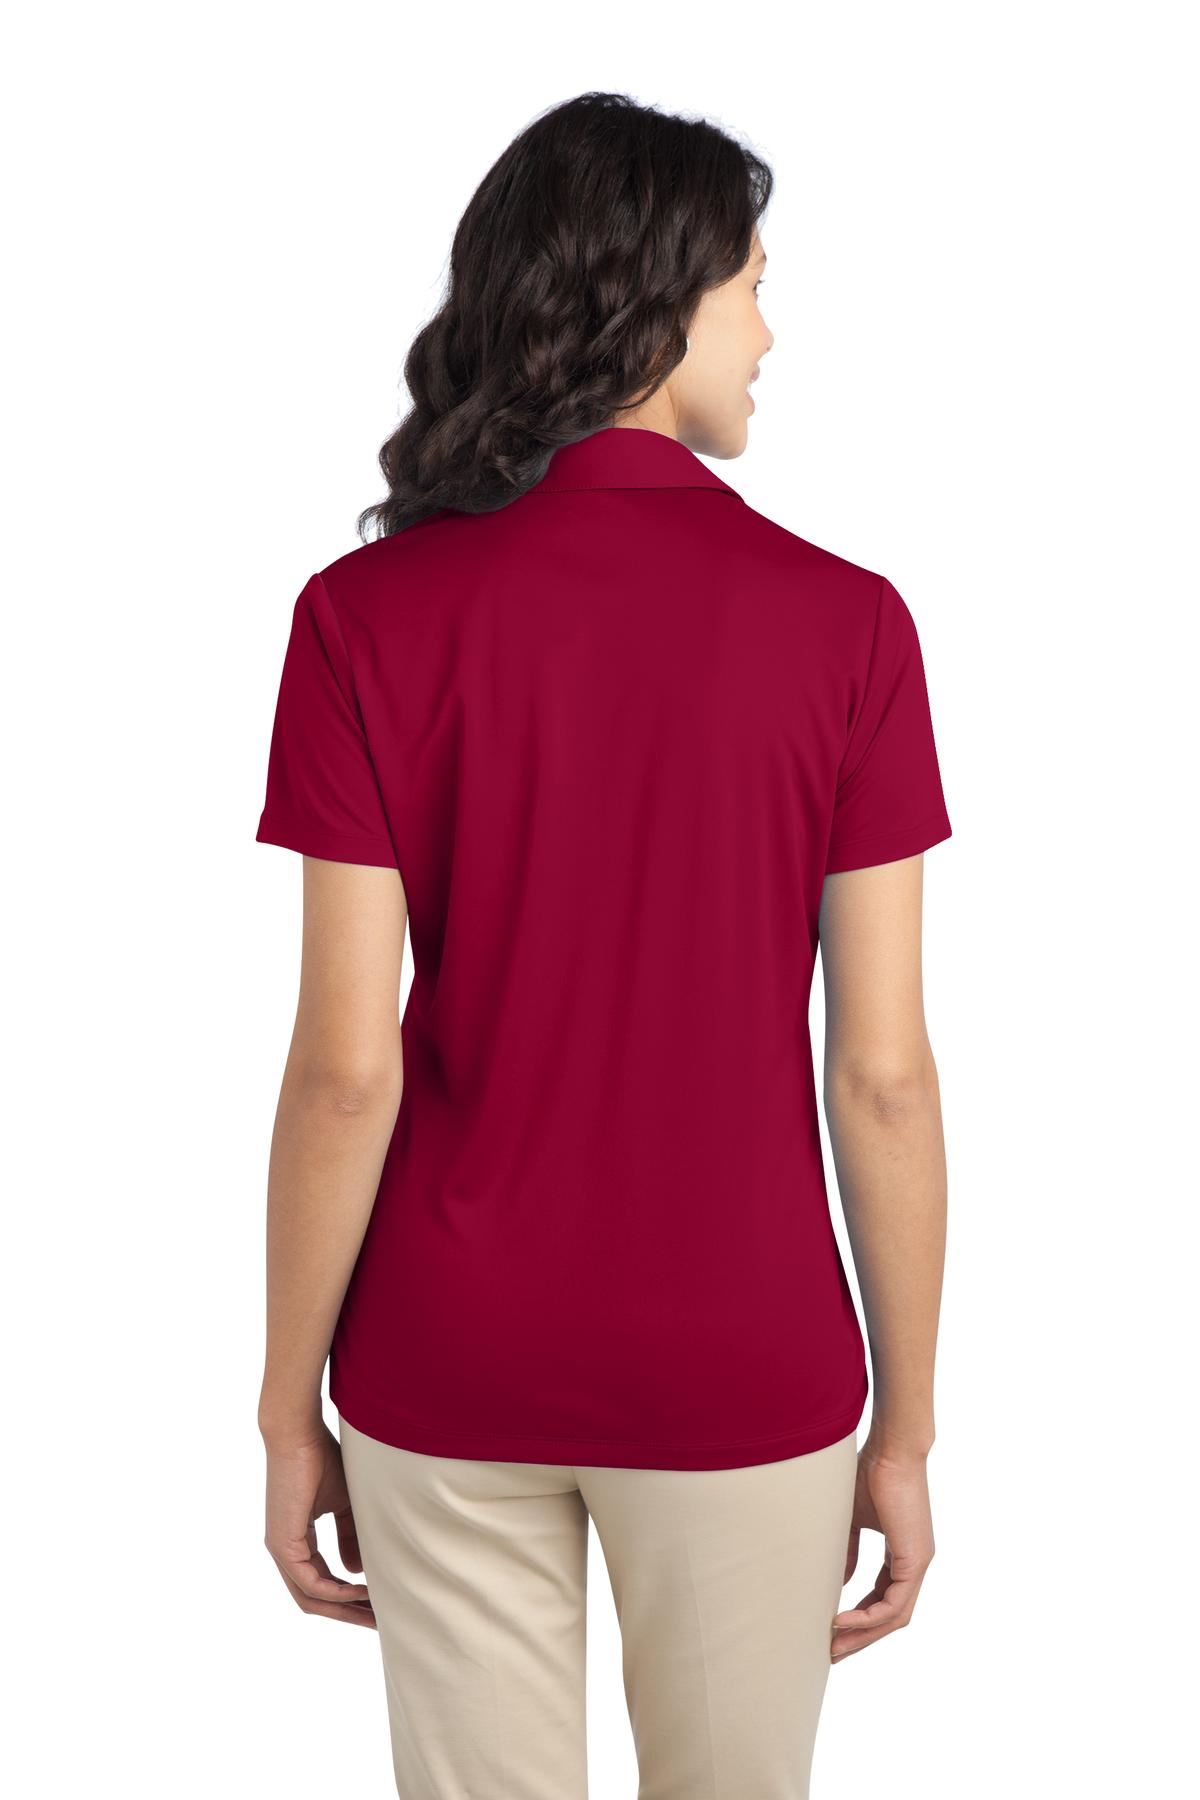 Port-Authority-Womens-Dri-Fit-SIlk-Touch-Performance-Polo-Golf-Shirt-M-L540 thumbnail 27